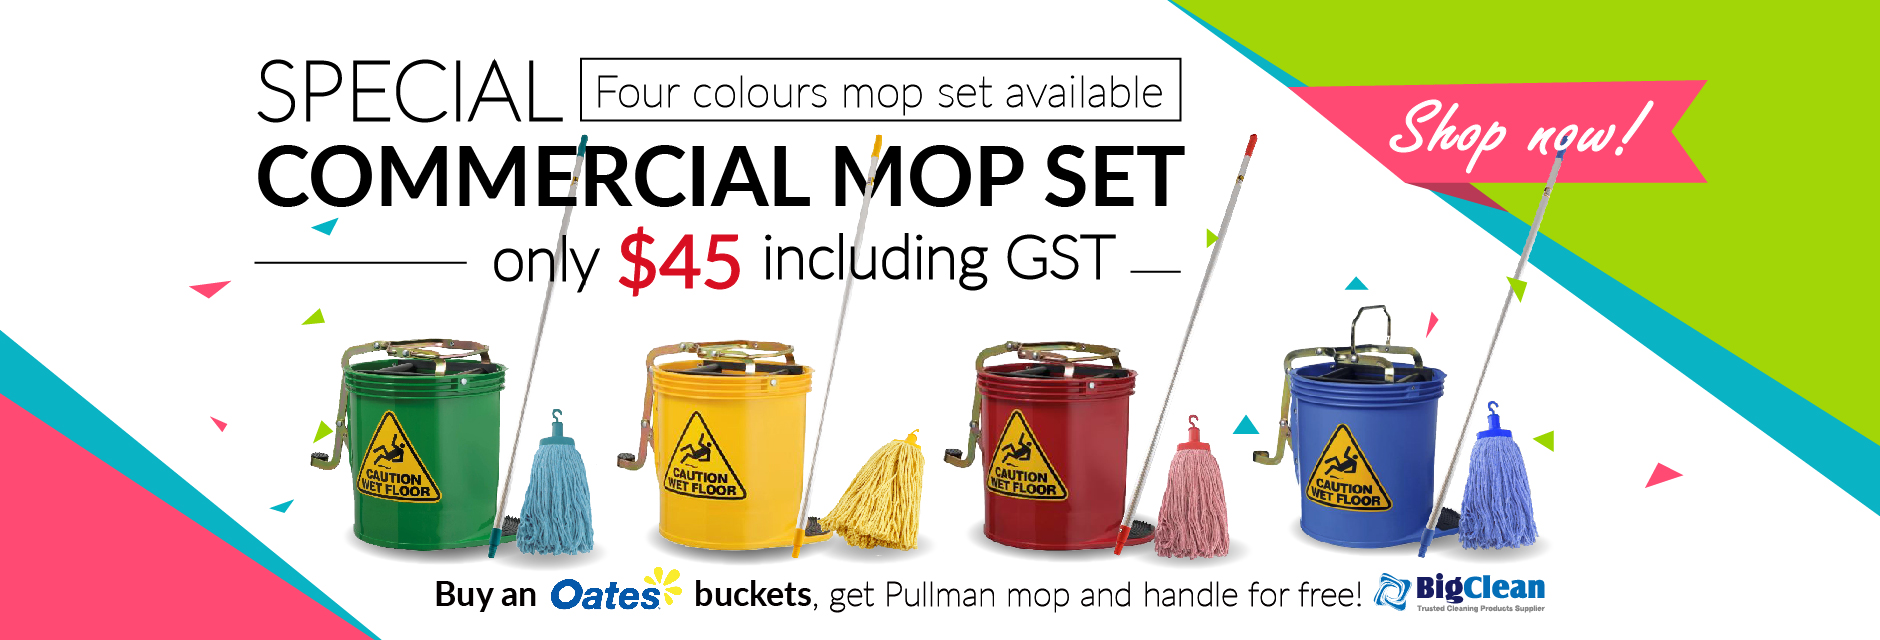 Special Commercial Mop Set